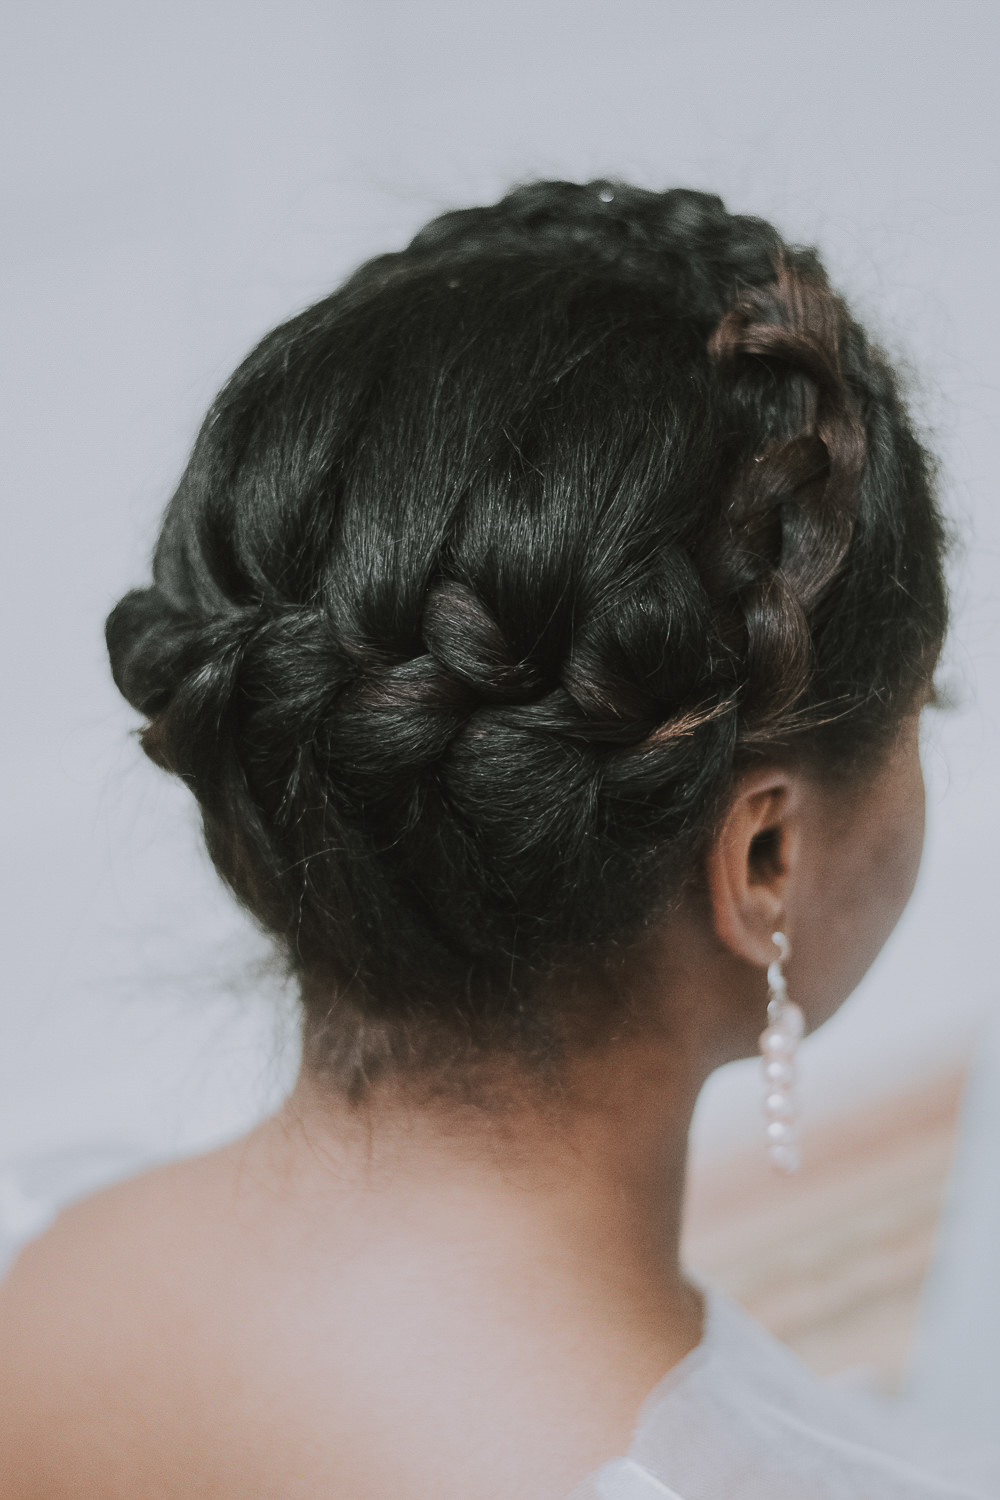 Bride Bridal Hair Style Up Do Plait Braid Halo Wes Anderson William Morris Wedding Ideas Jessica Hill Photography